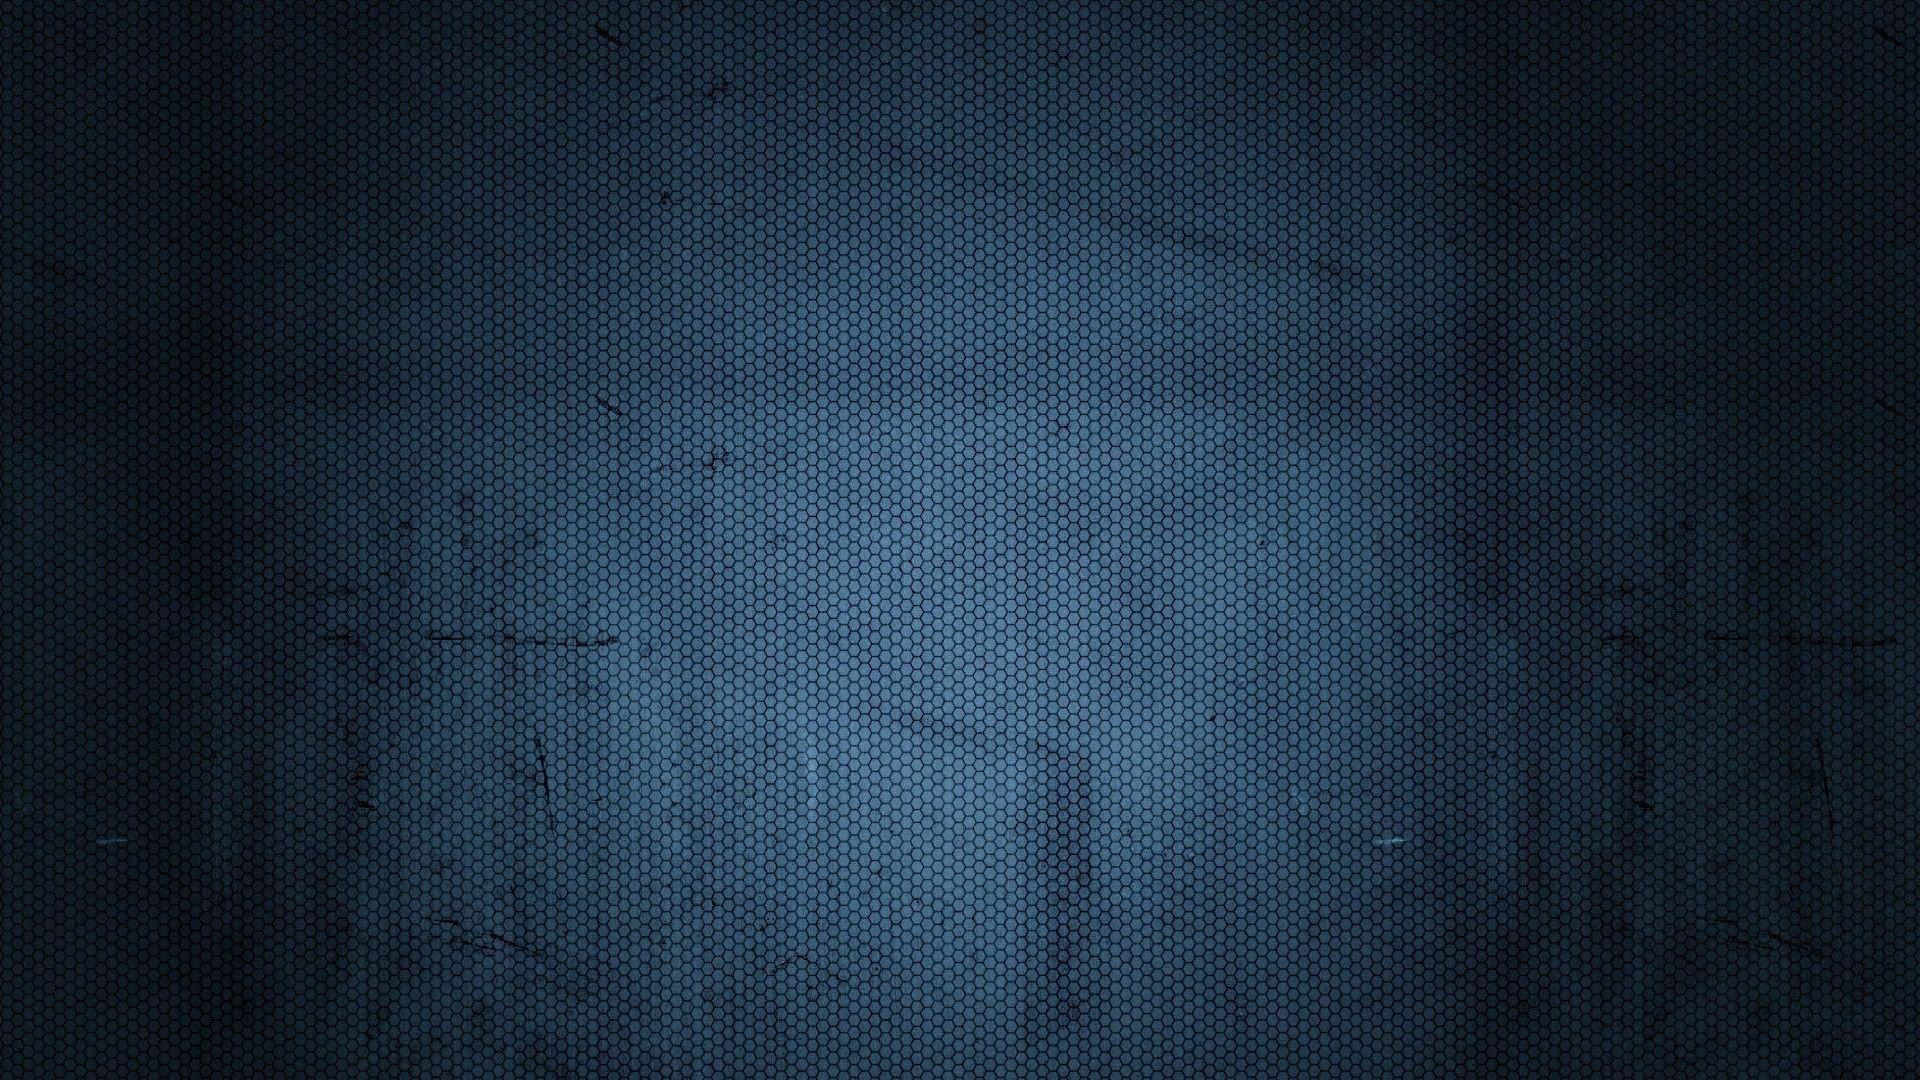 Wallpapers For > Dark Blue Textured Backgrounds